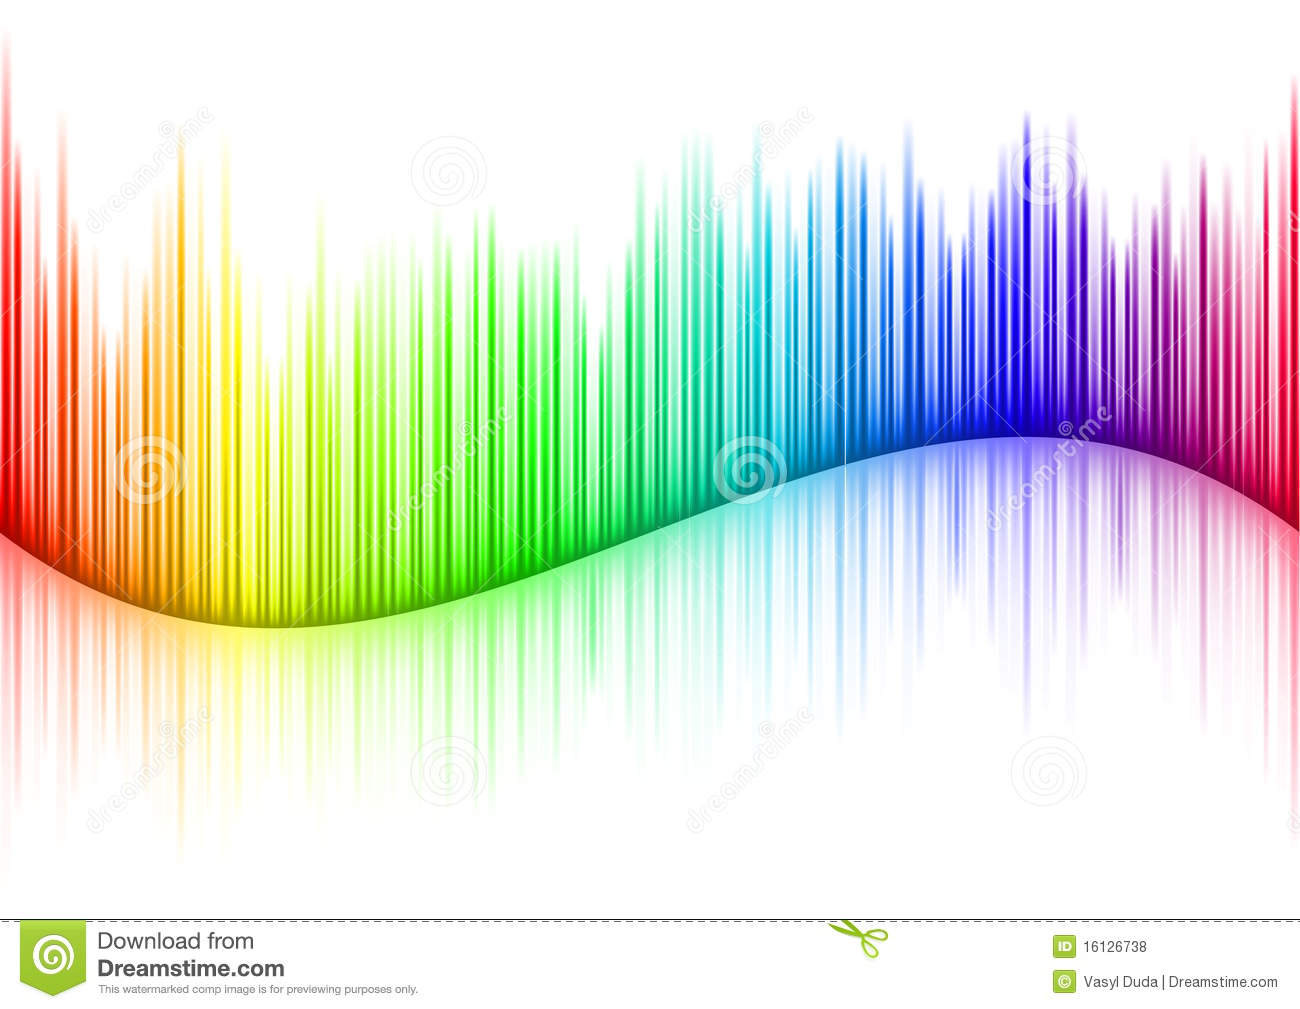 Sound Waveform Royalty Free Stock Photos Image 16126738